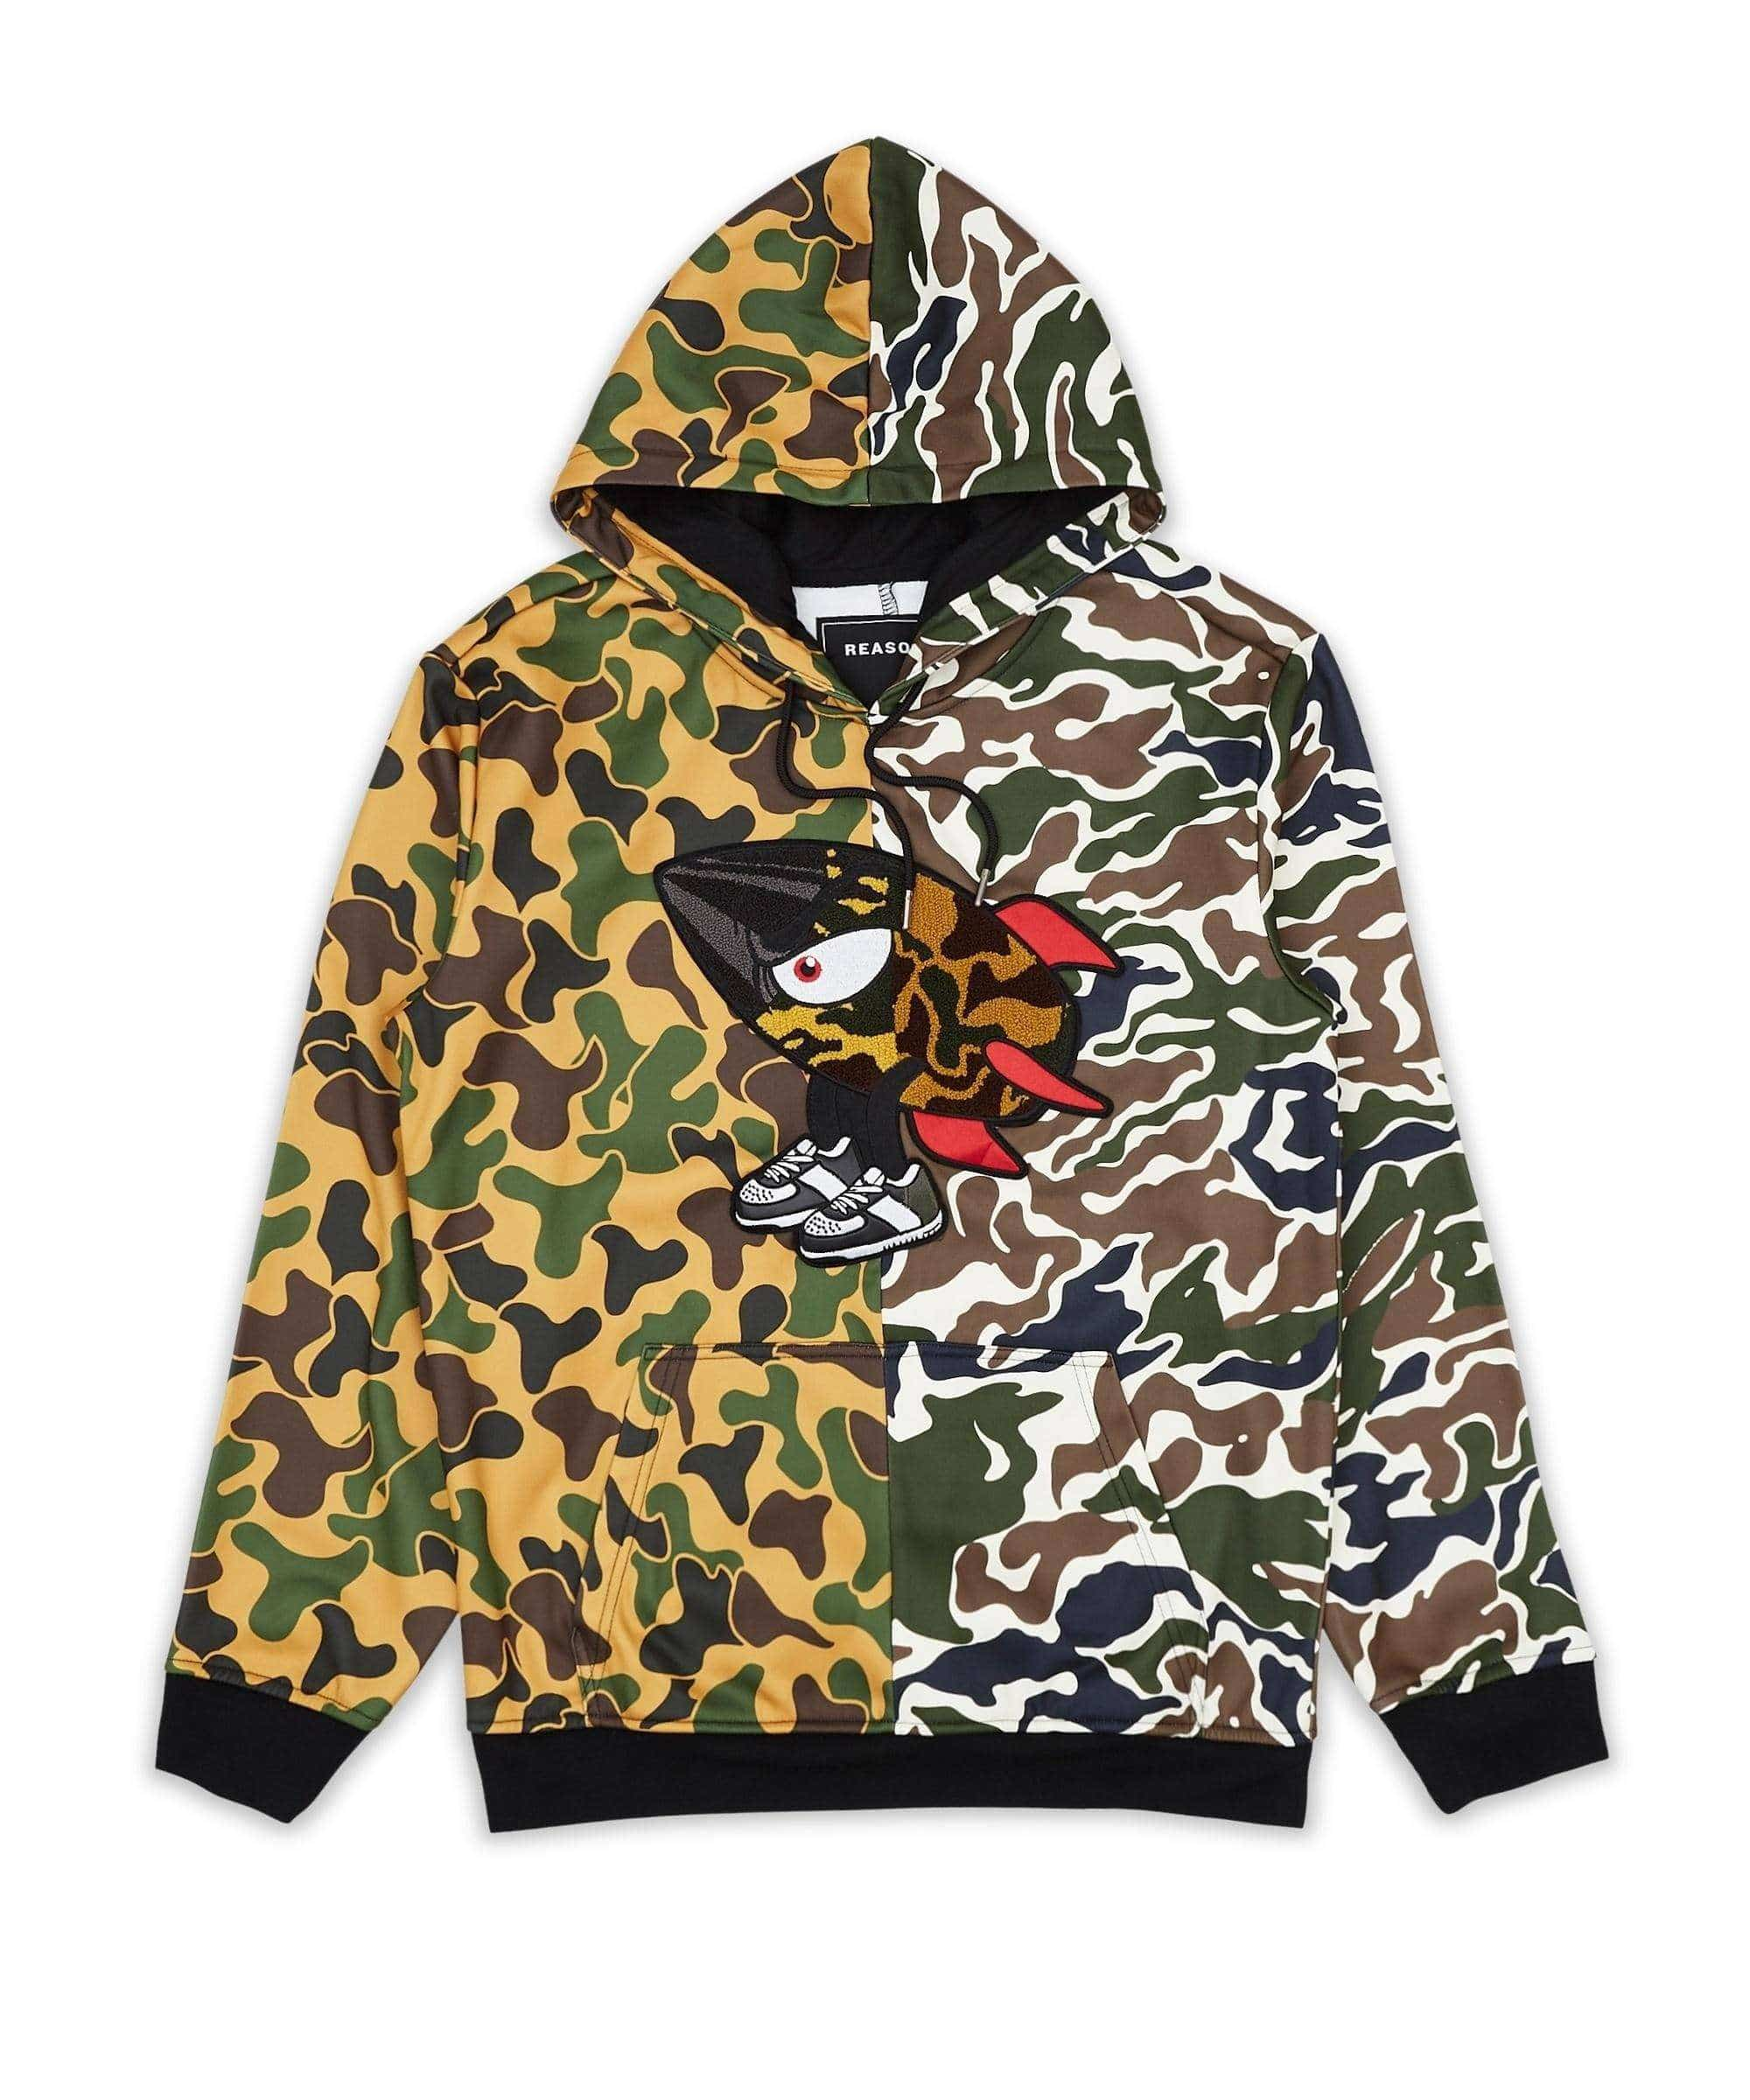 ROCKET HOODY Reason Clothing